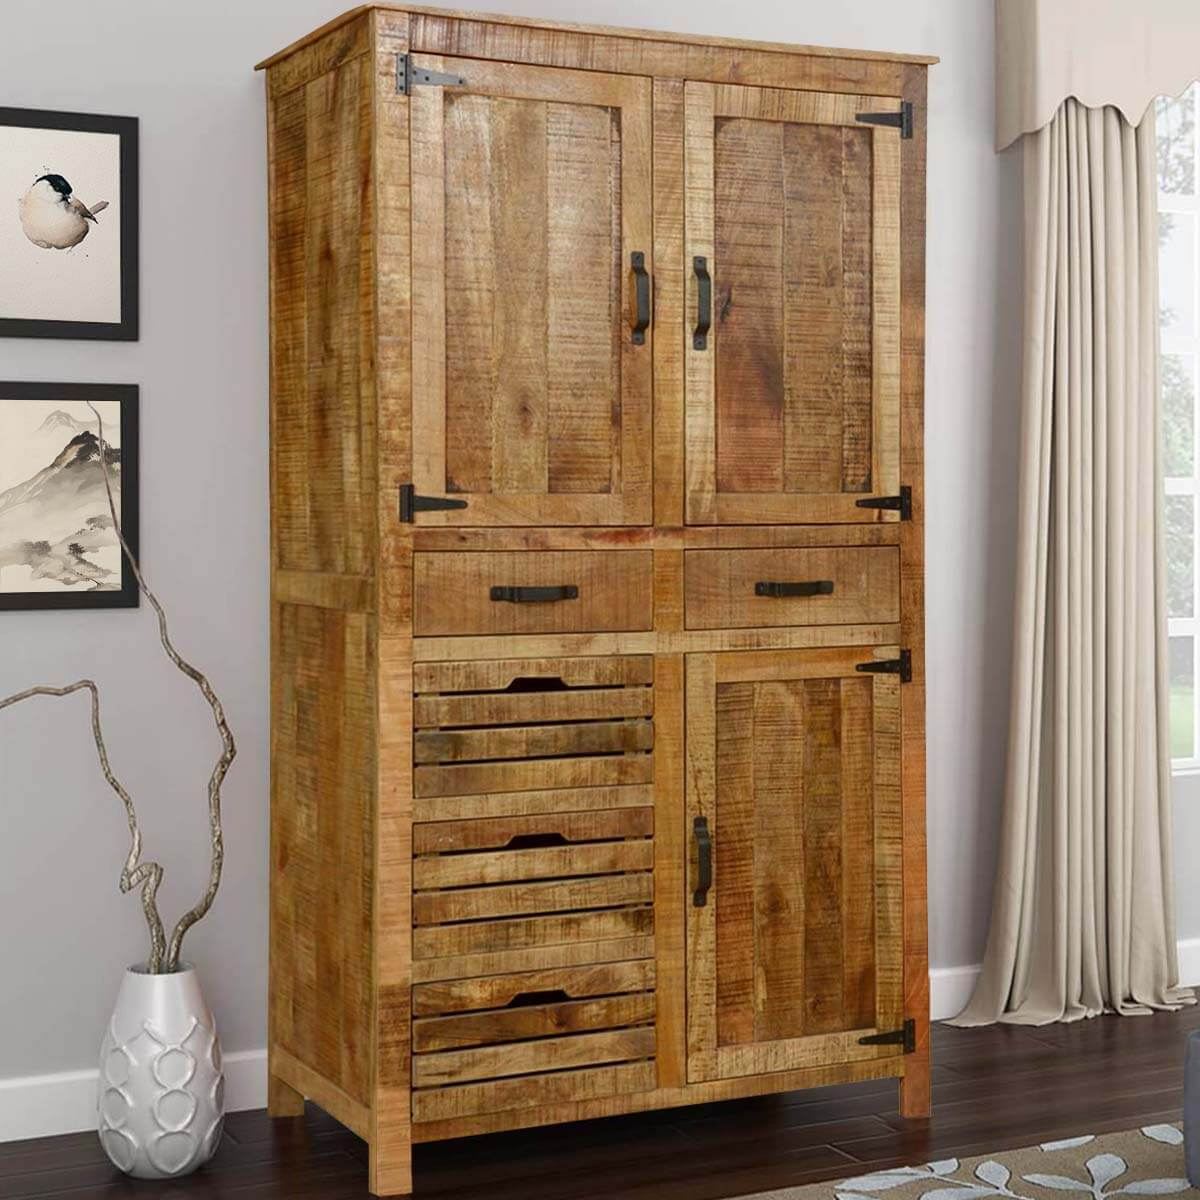 Avon Pioneer Rustic Solid Wood Armoire With Shelves And 5 ...